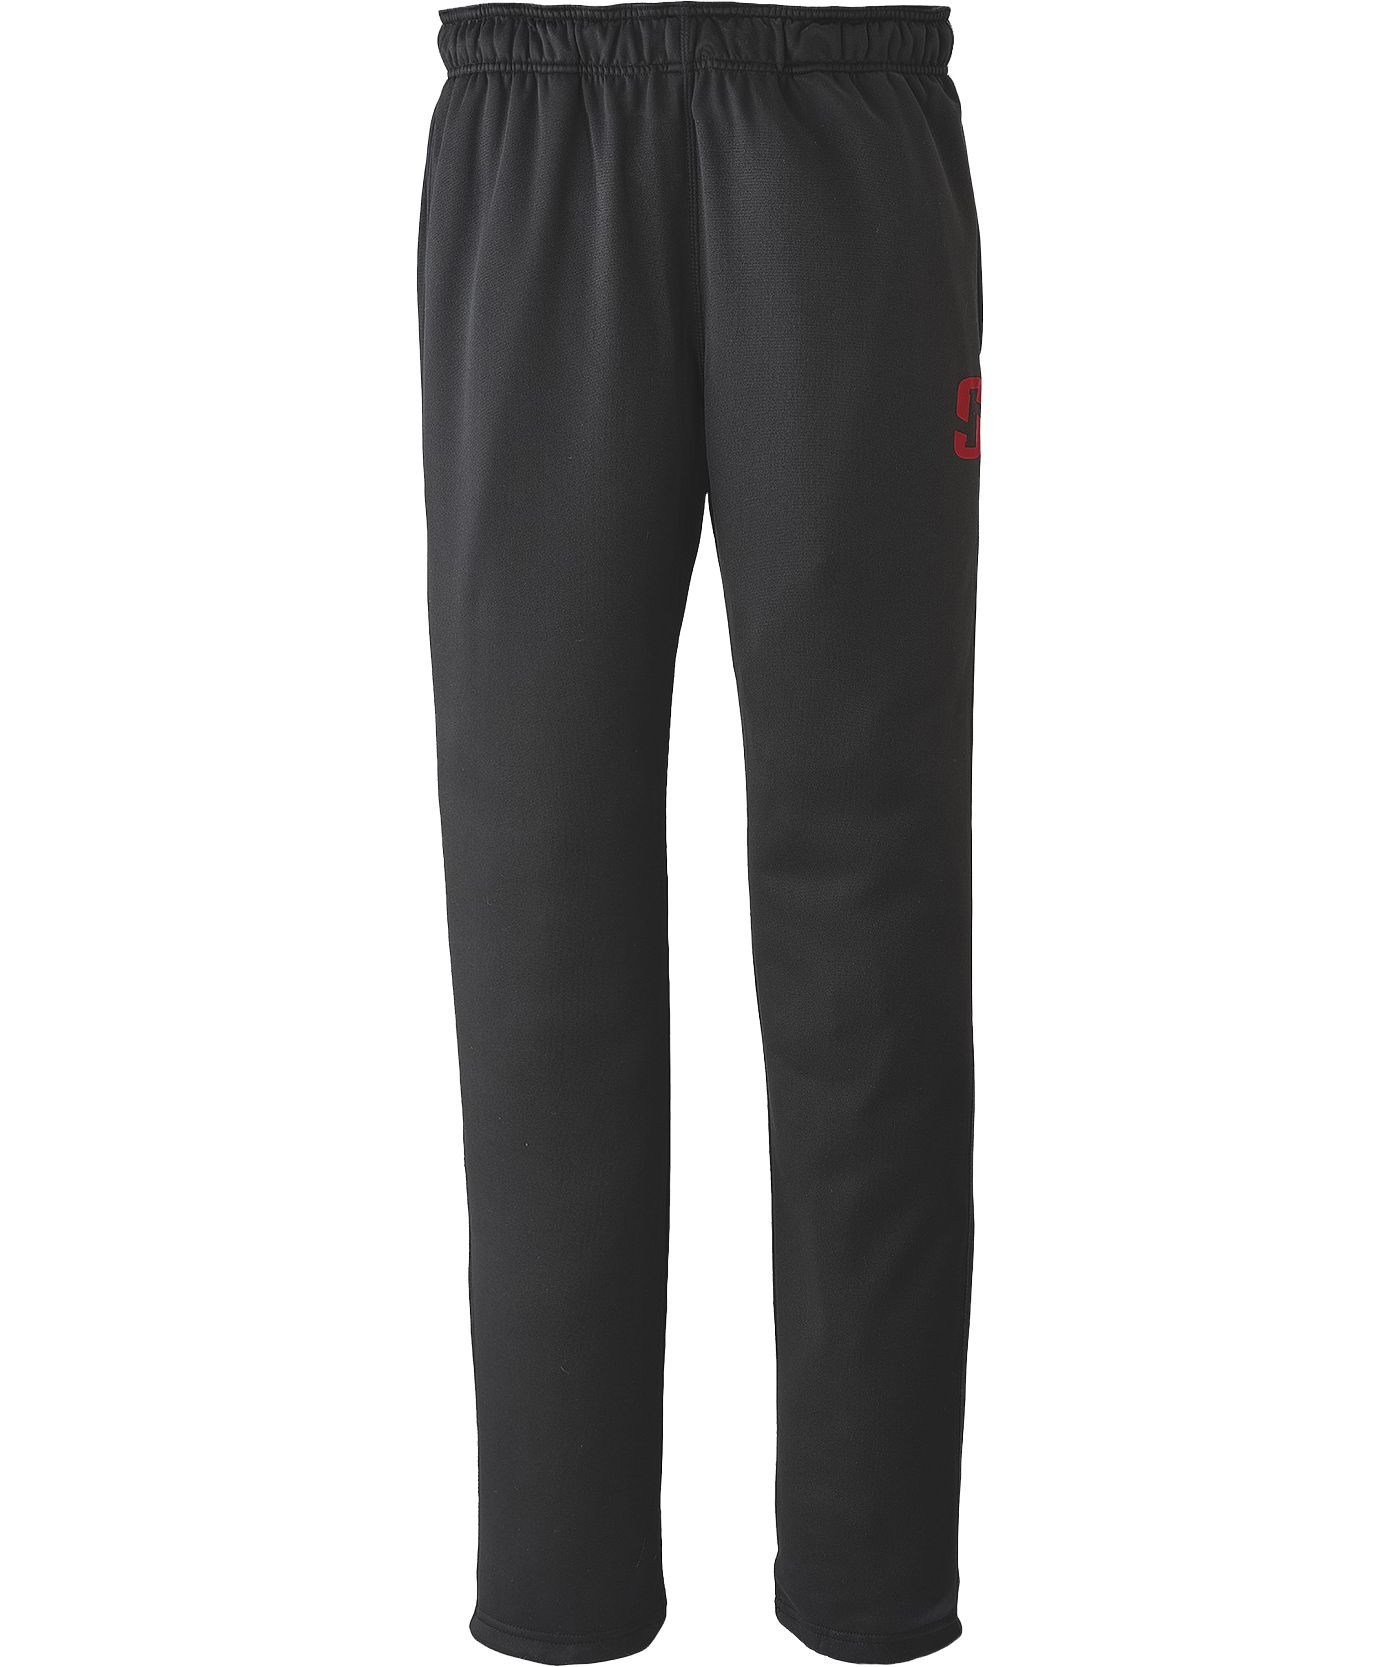 Striker Men's Elite Sweatpants (Regular and Big & Tall)